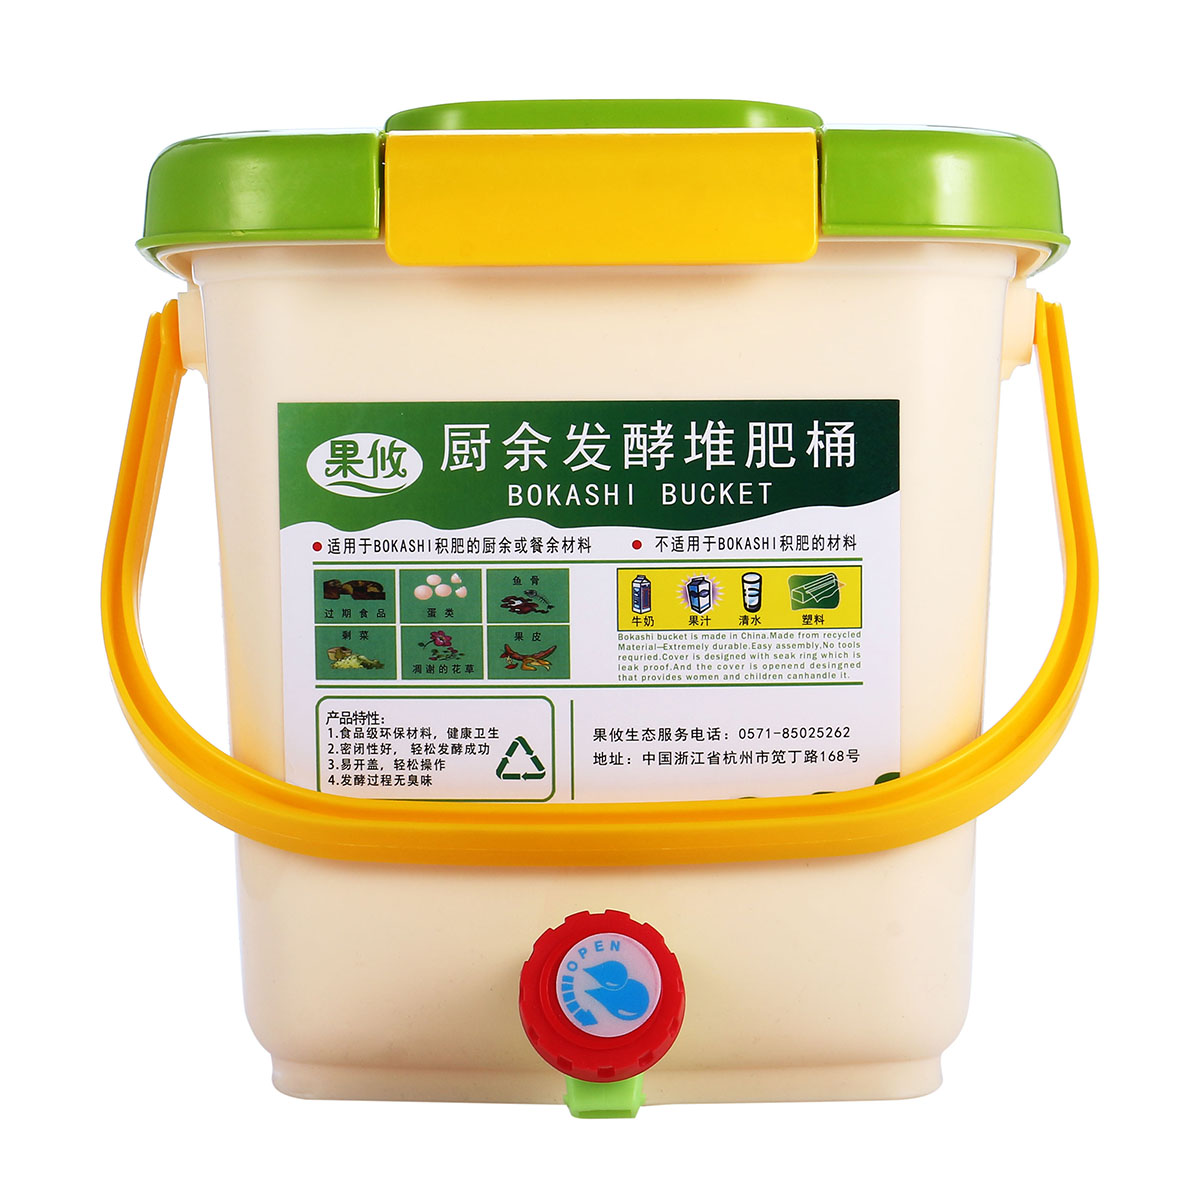 12L Compost Bin Recycle Composter Aerated Compost Bin PP Organic Homemade Trash Can Bucket Kitchen Garden Food Waste Bins title=